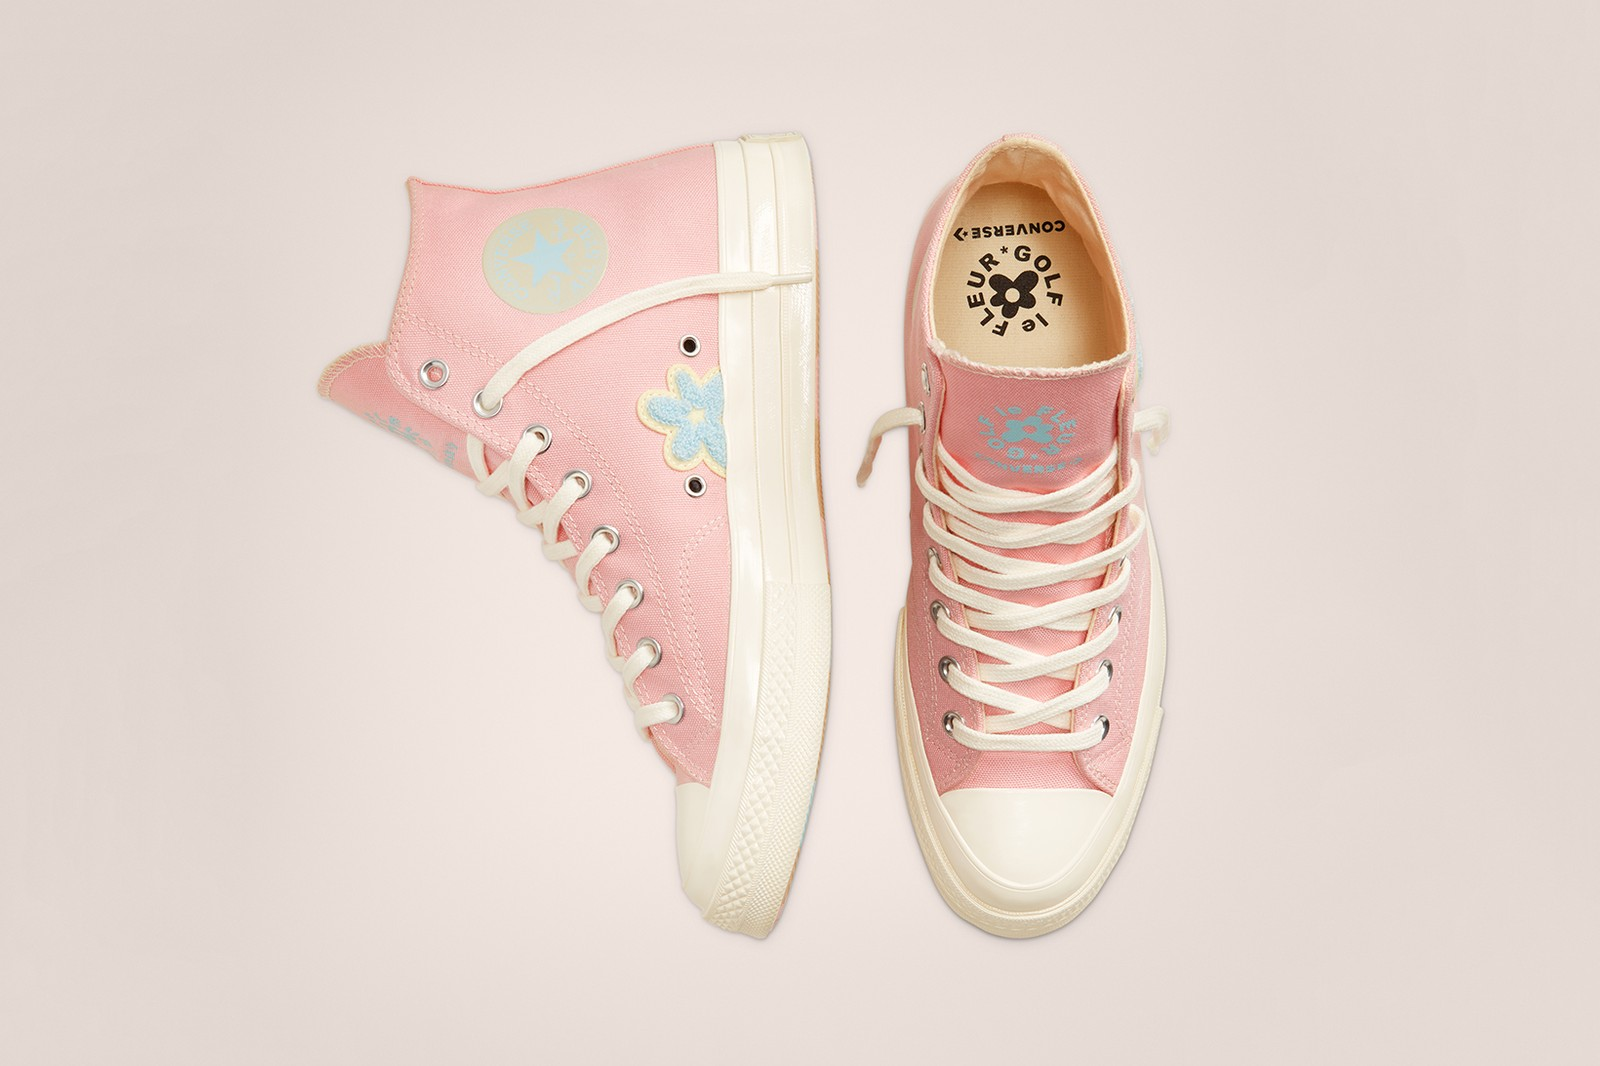 GOLF le FLEUR Gianno Chenille Chuck 70 Pink Green Yellow